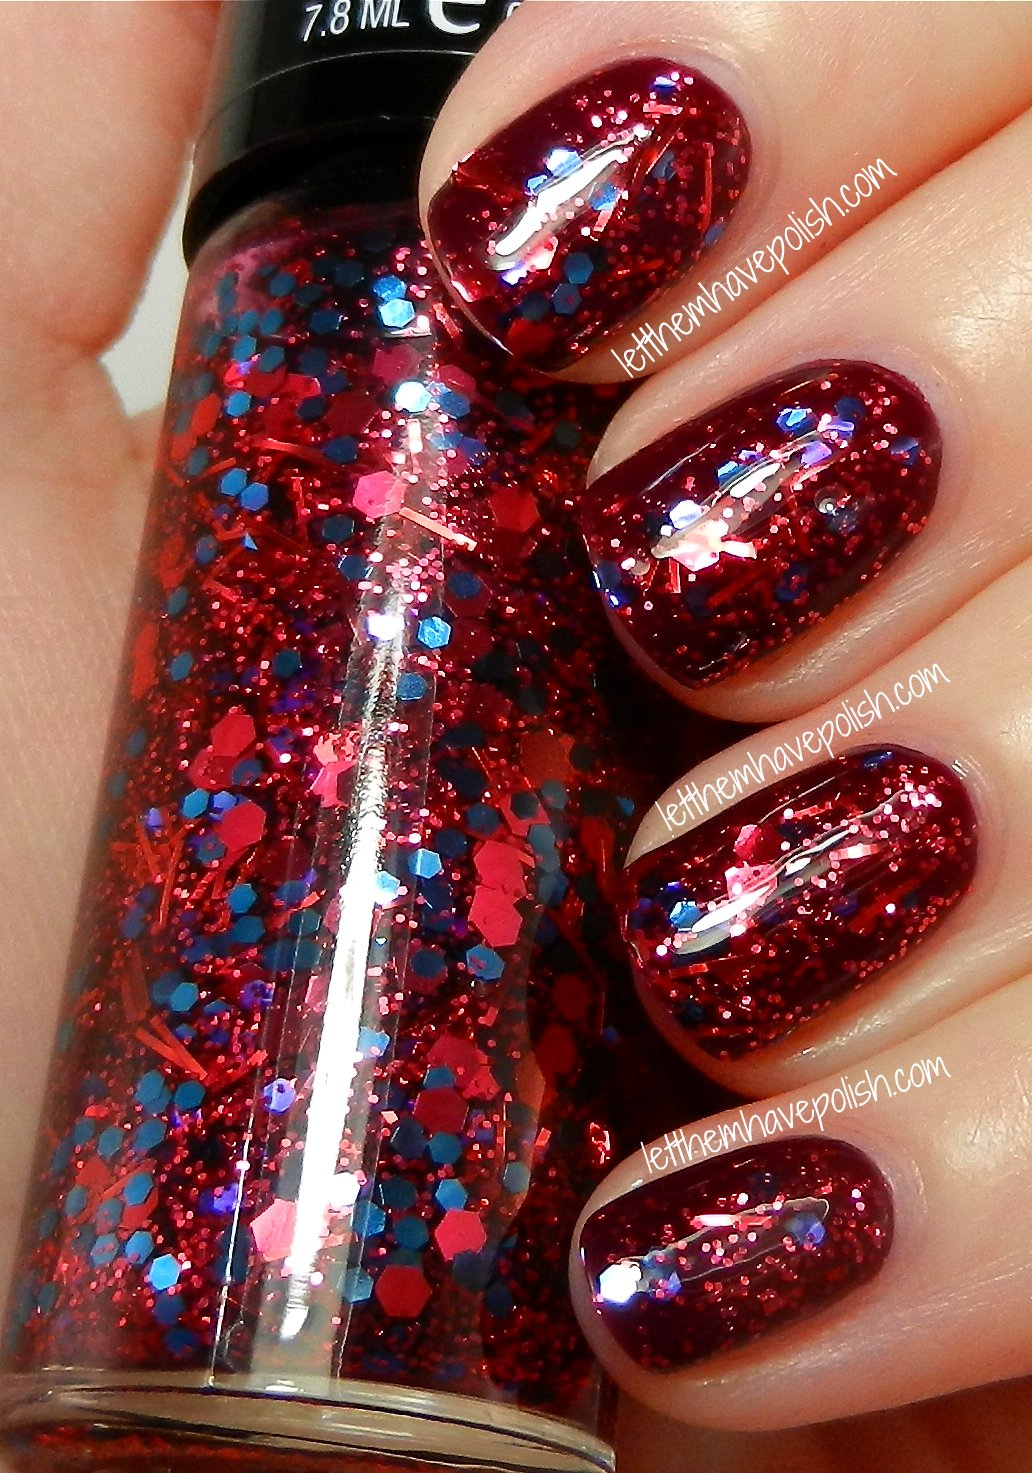 Hard Candy: Fireworks · The Polish Haven · Online Store Powered by ...